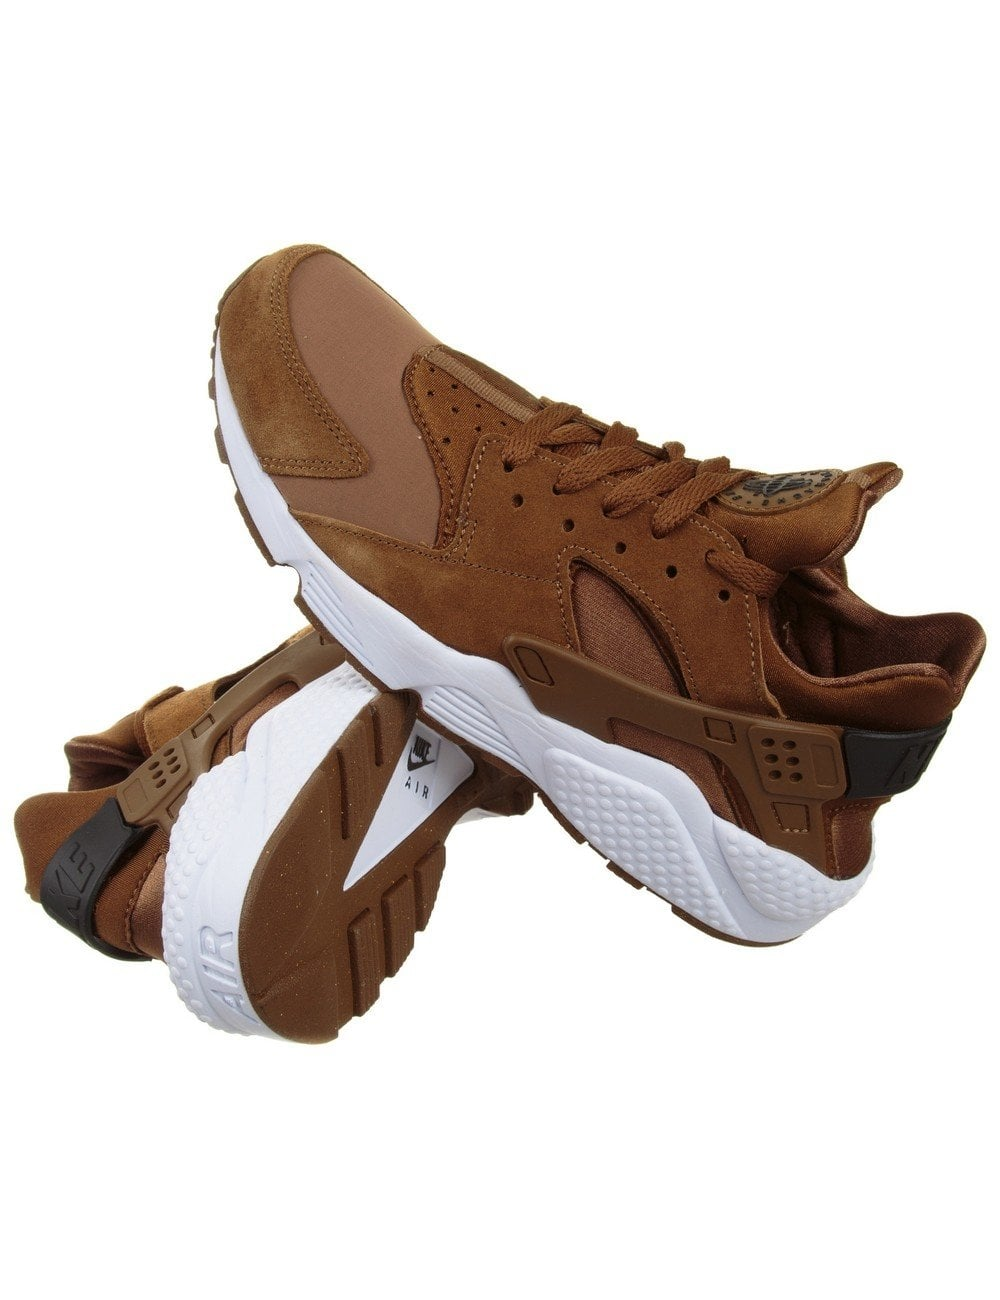 the best attitude 730ad 33c70 Air Huarache - Umber Brown